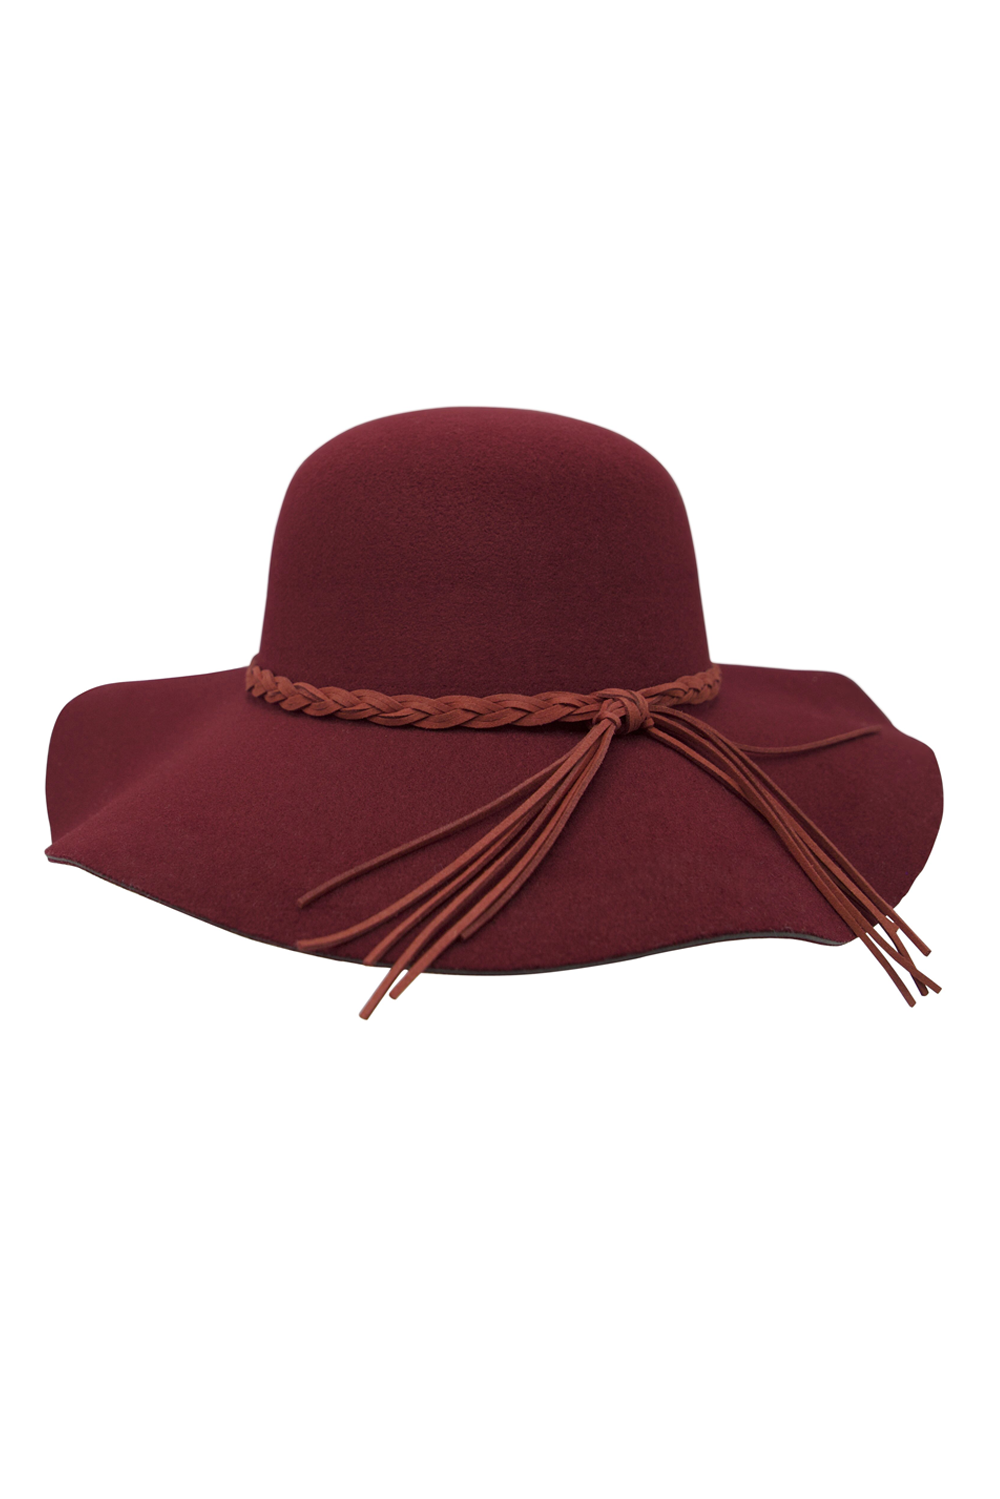 Womens Red Vintage Floppy Hat